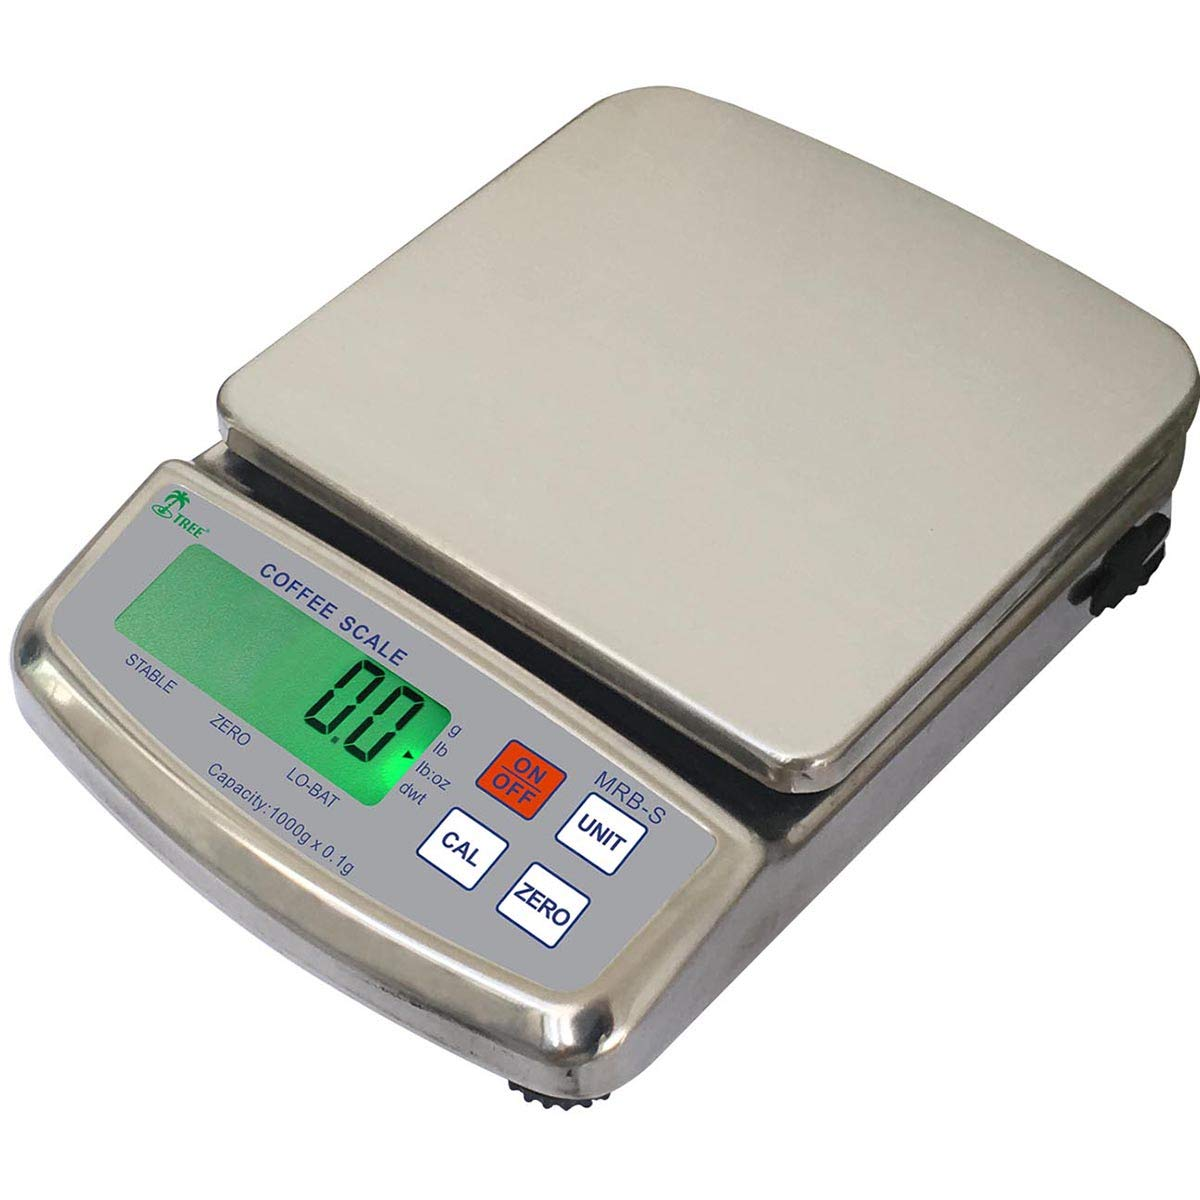 LW Bargain sale MRB-S 1000 Stainless Steel Balance g Resolution New Shipping Free Mid x